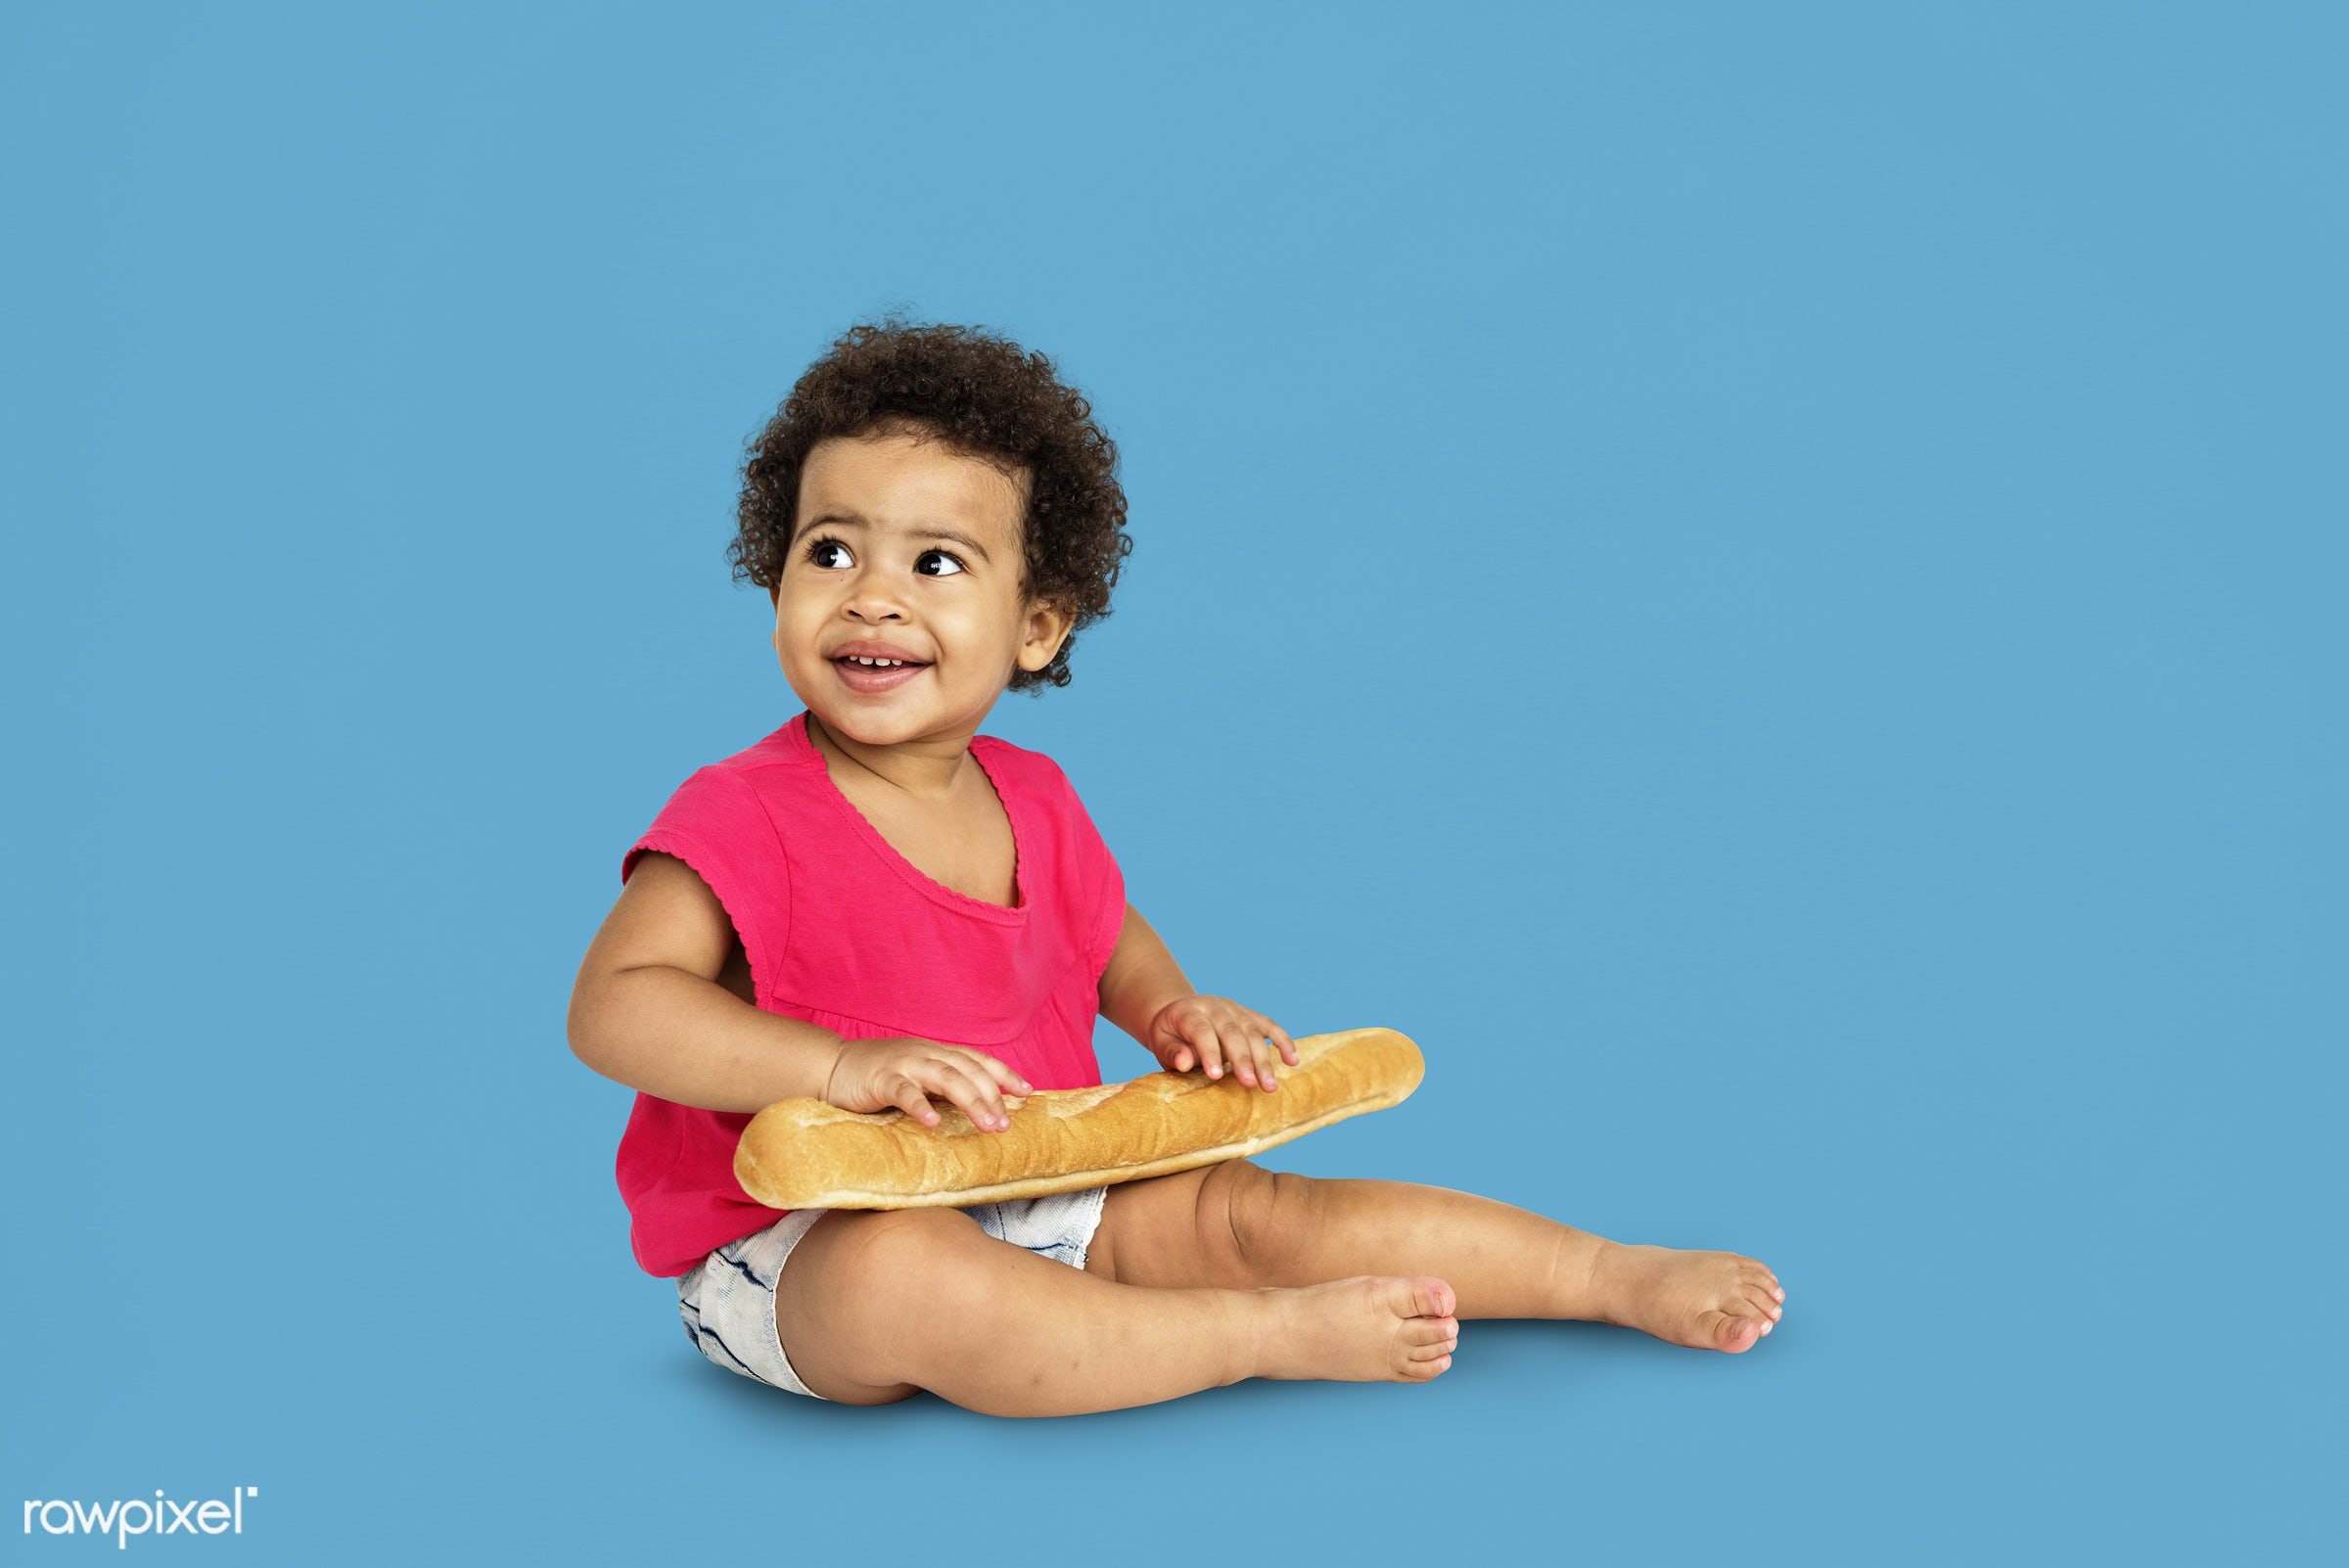 expression, studio, person, hug, little, cute, people, kid, child, pose, girl, joyous, happy, bread, cheerful, isolated,...